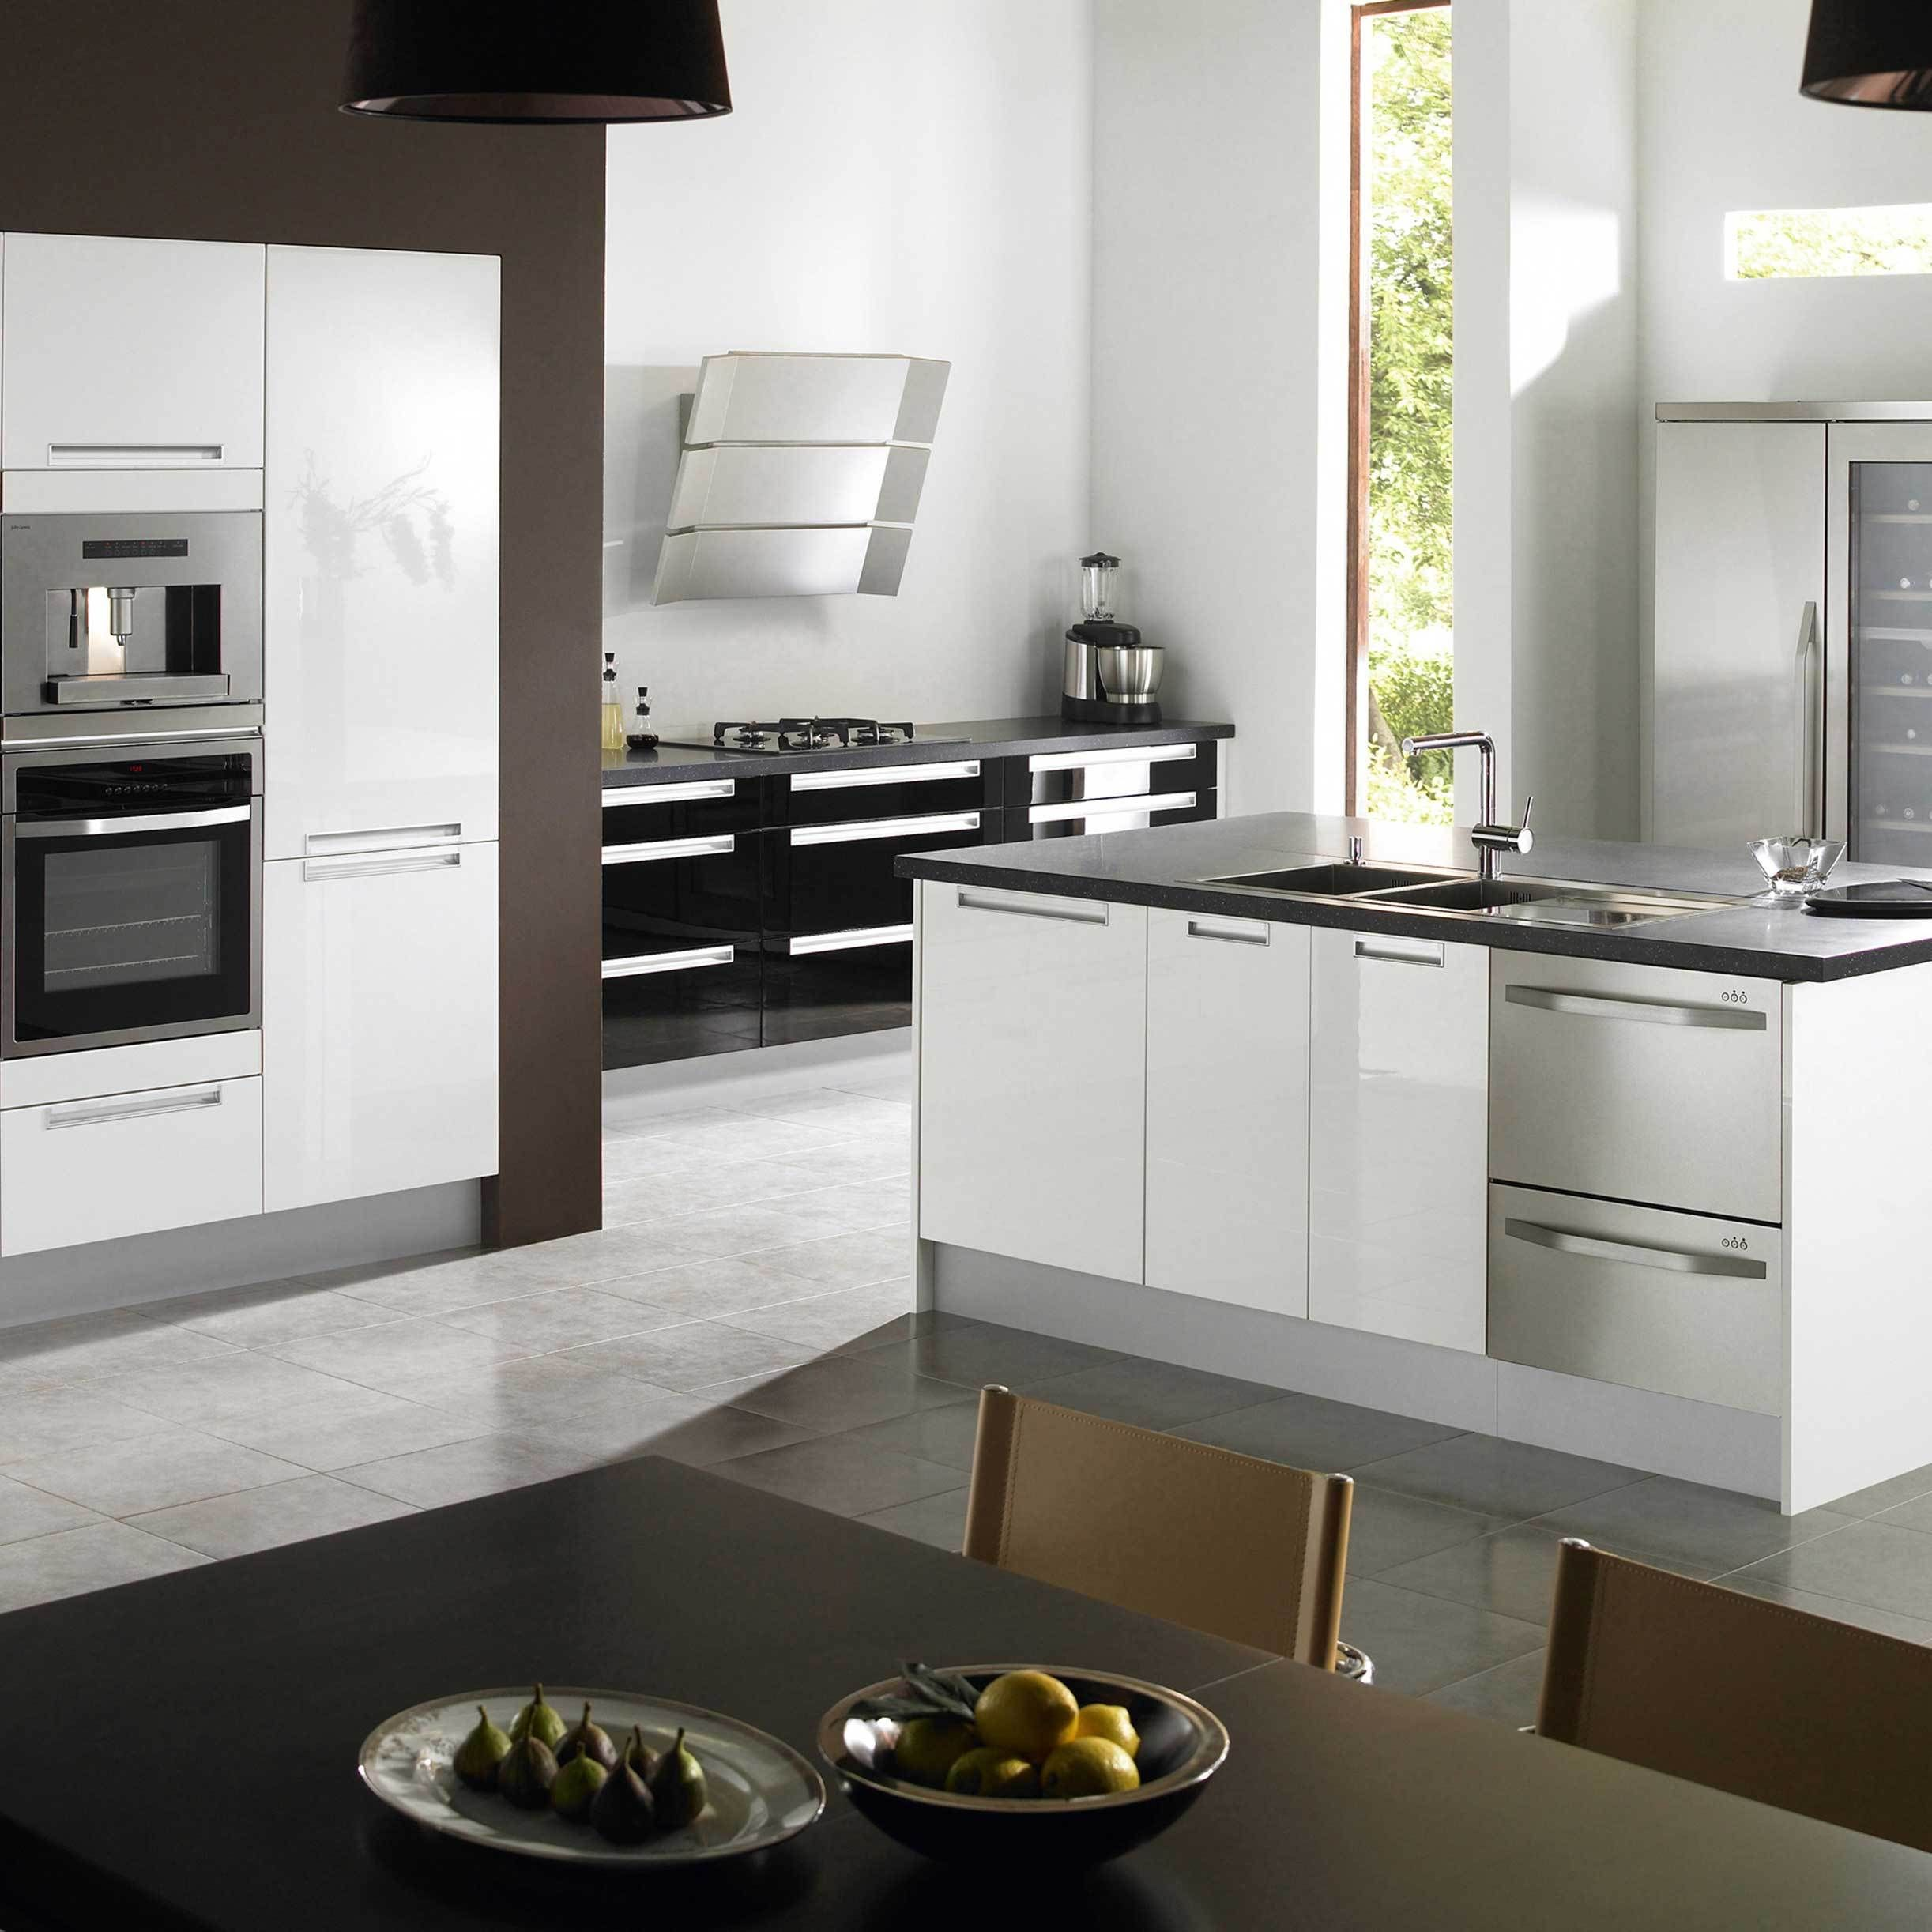 luxury white kitchen appliances home idea